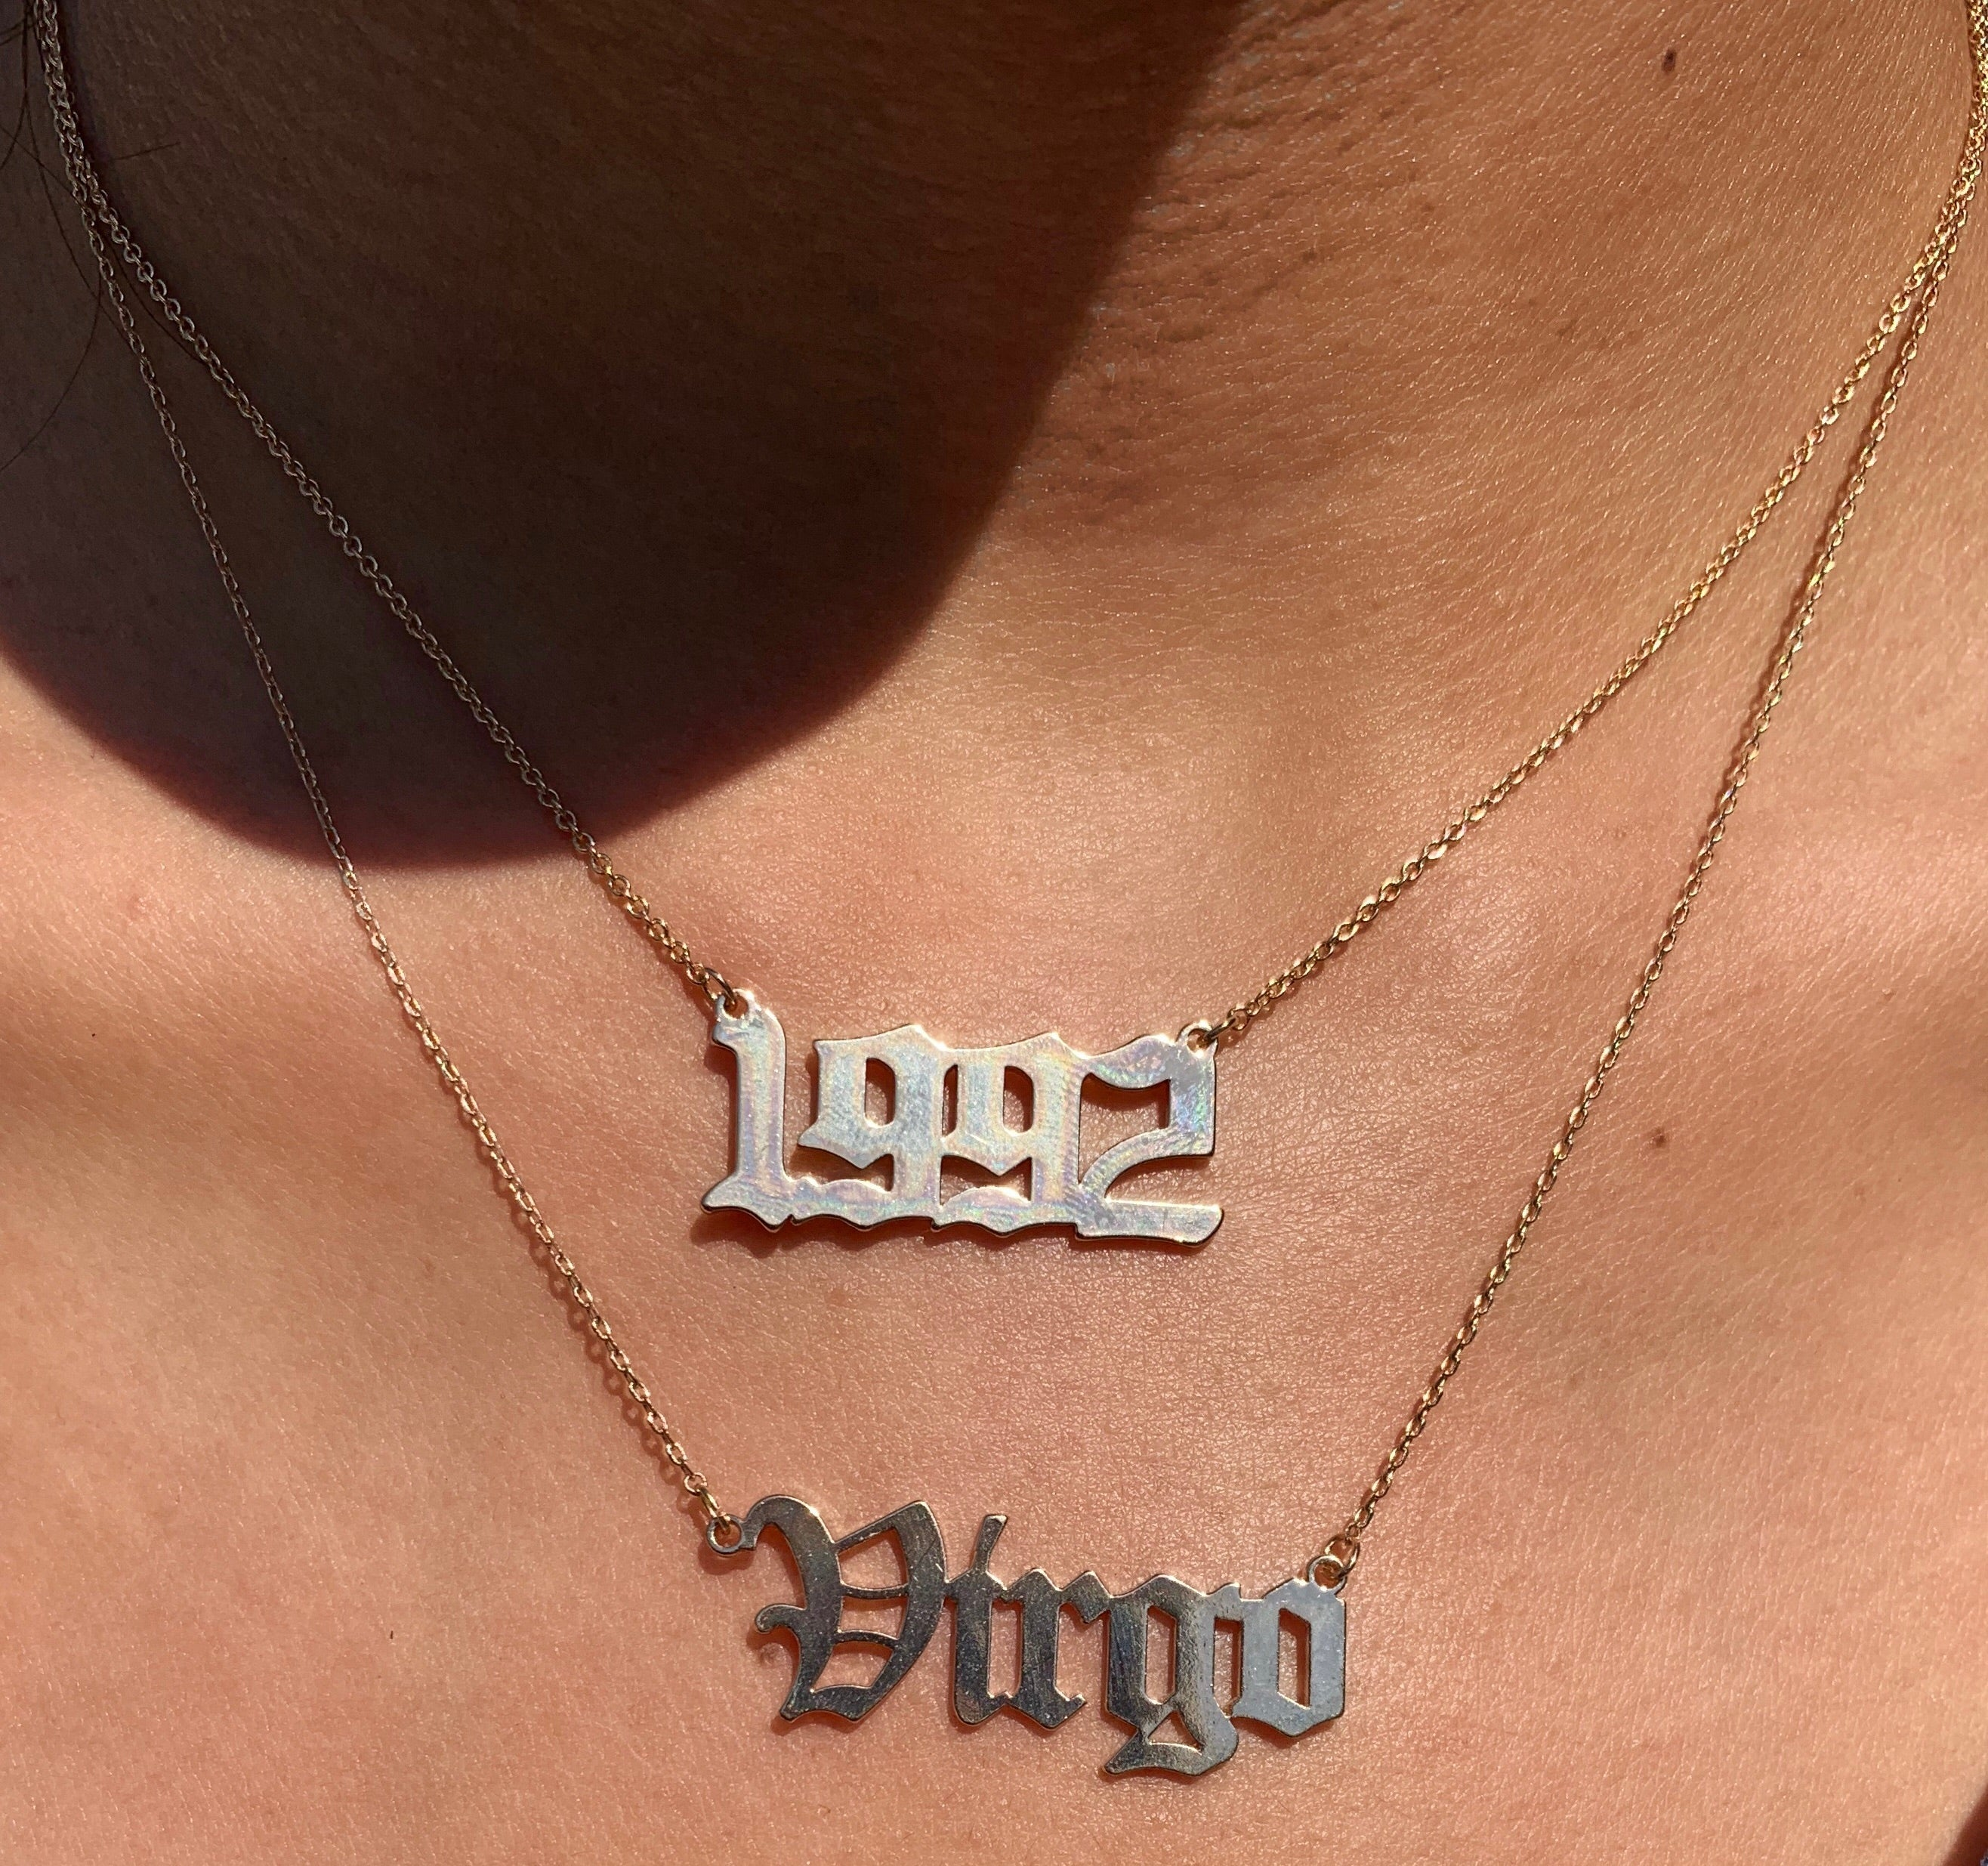 Birth year pendant